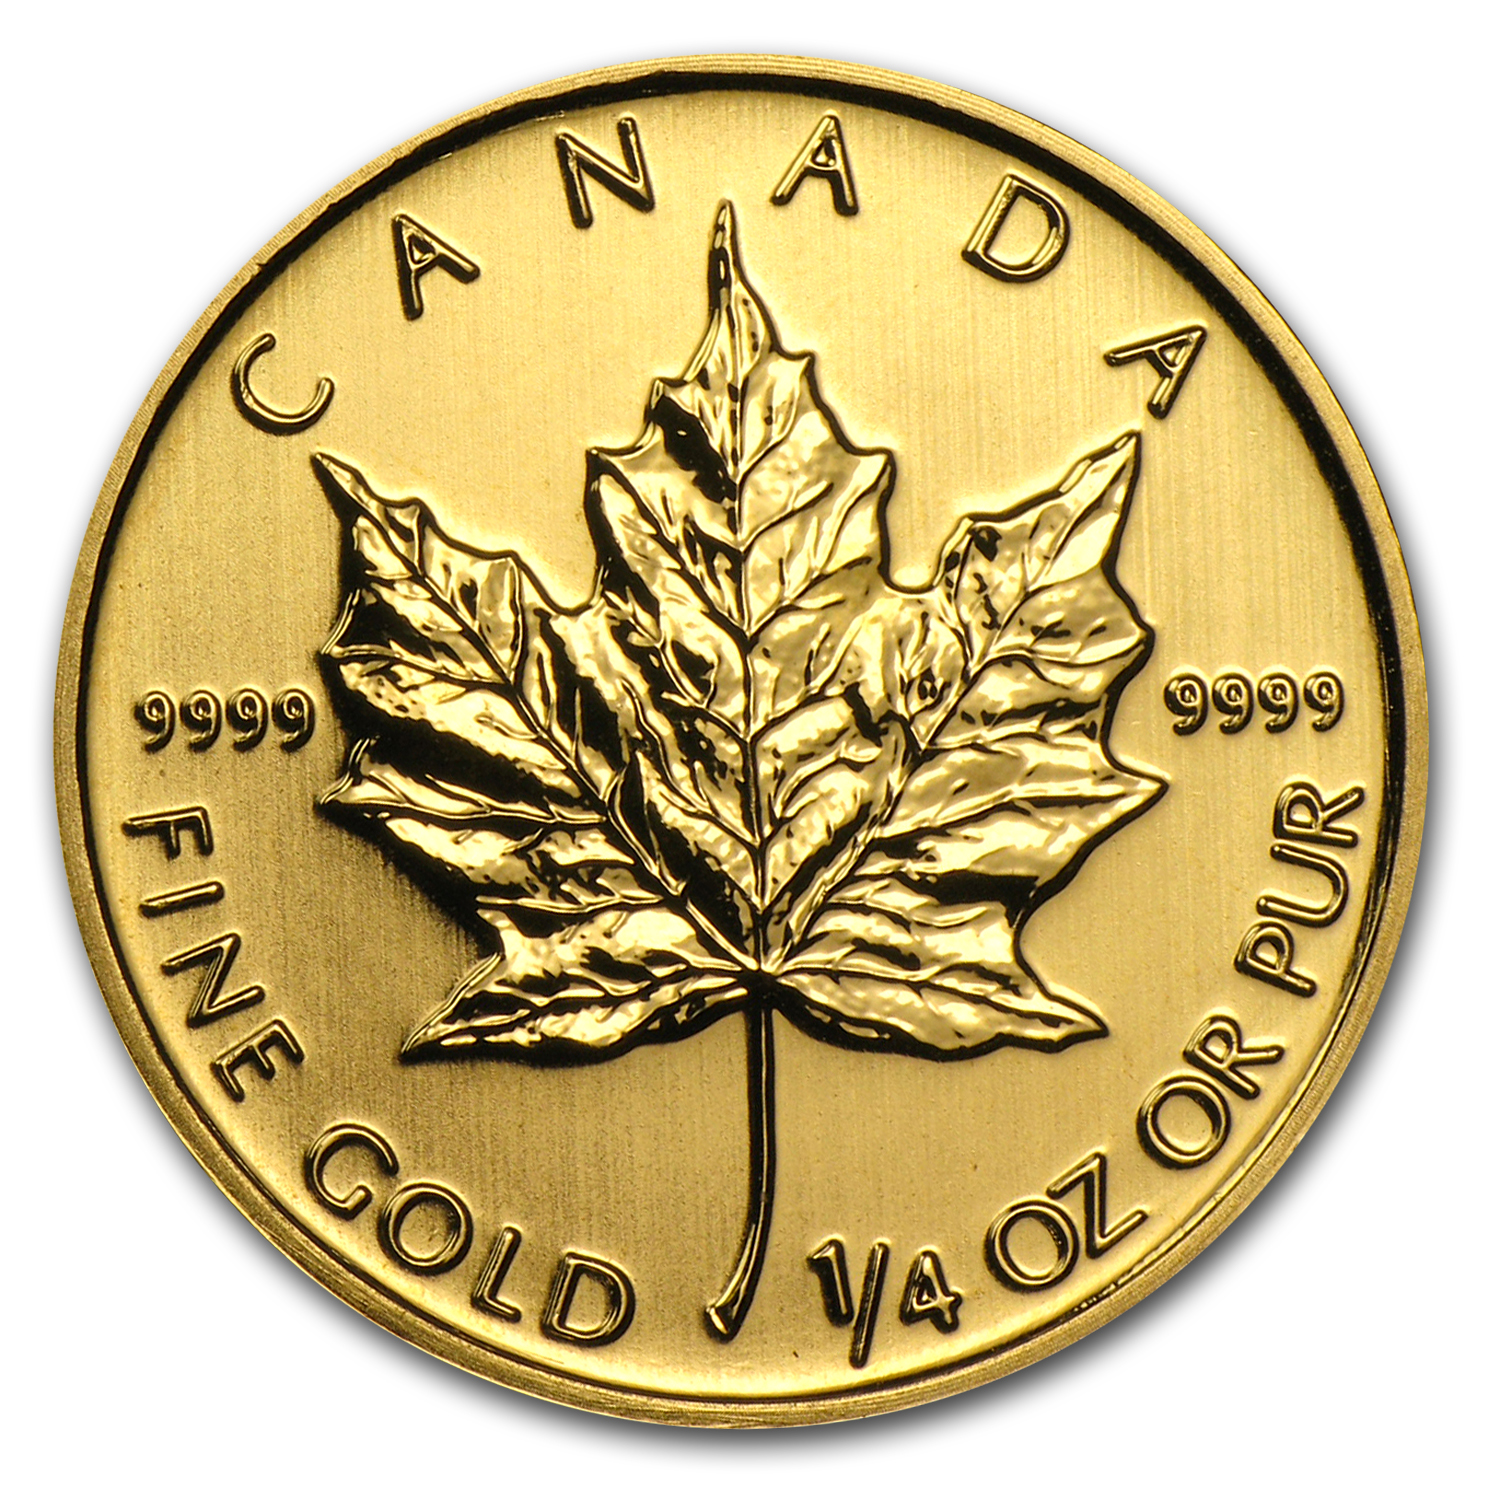 2013 Canada 1/4 oz Gold Maple Leaf BU